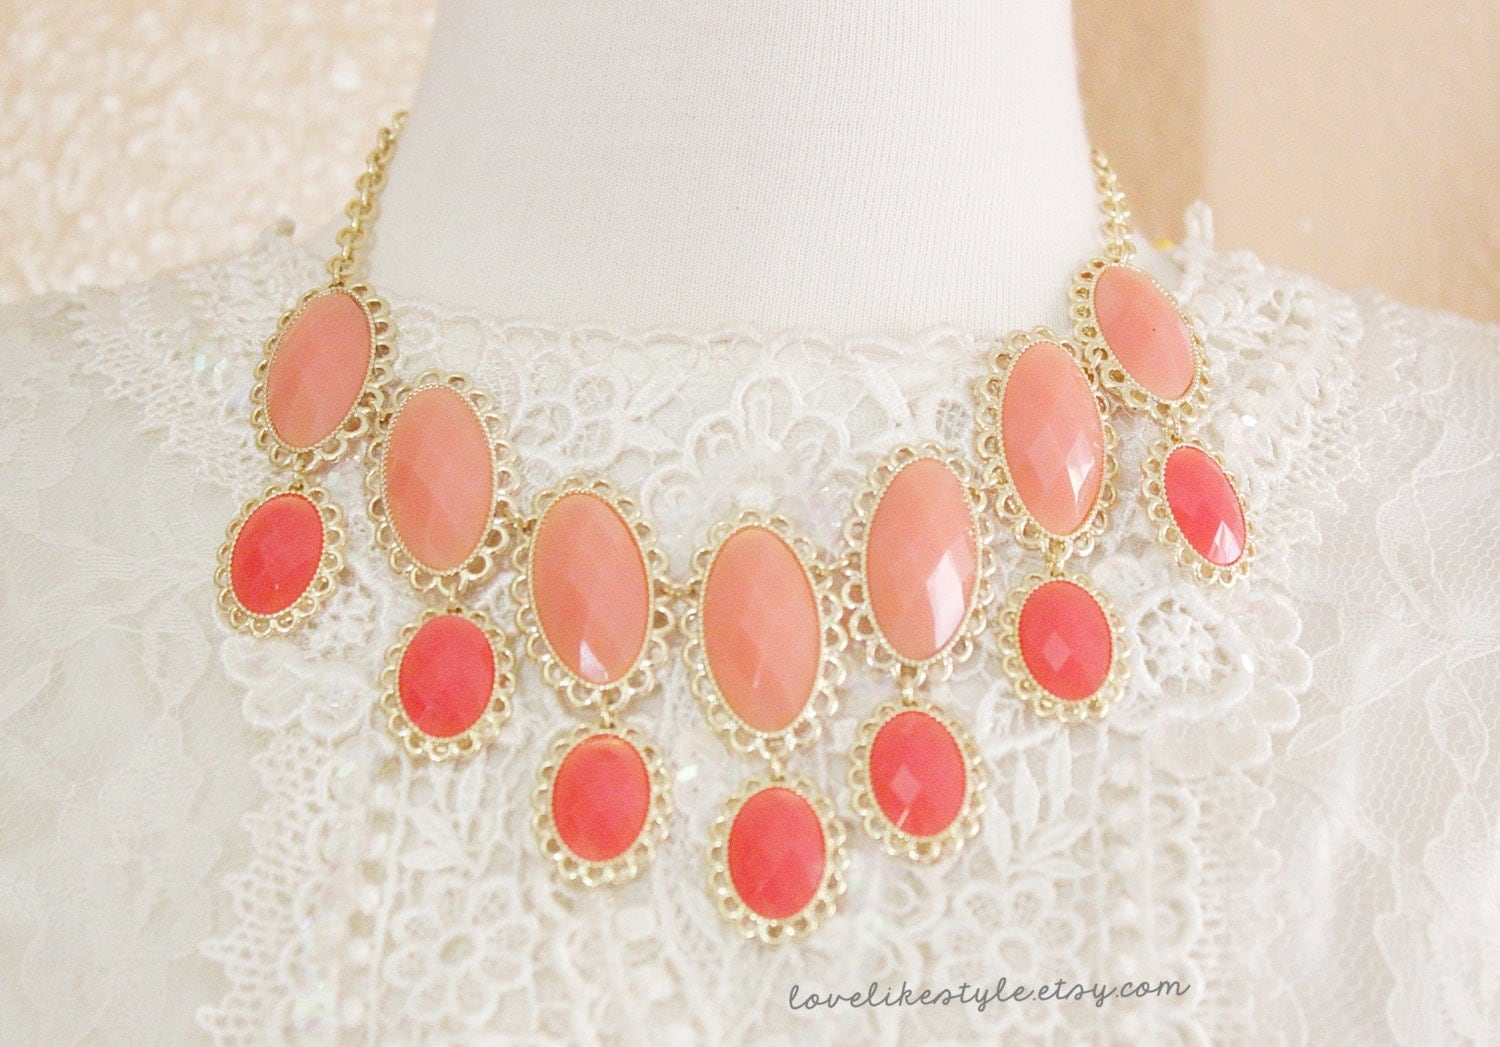 Peach and Coral Stone and Gold Lace Edge Statement Necklace , Bib Necklace, Peach Necklace